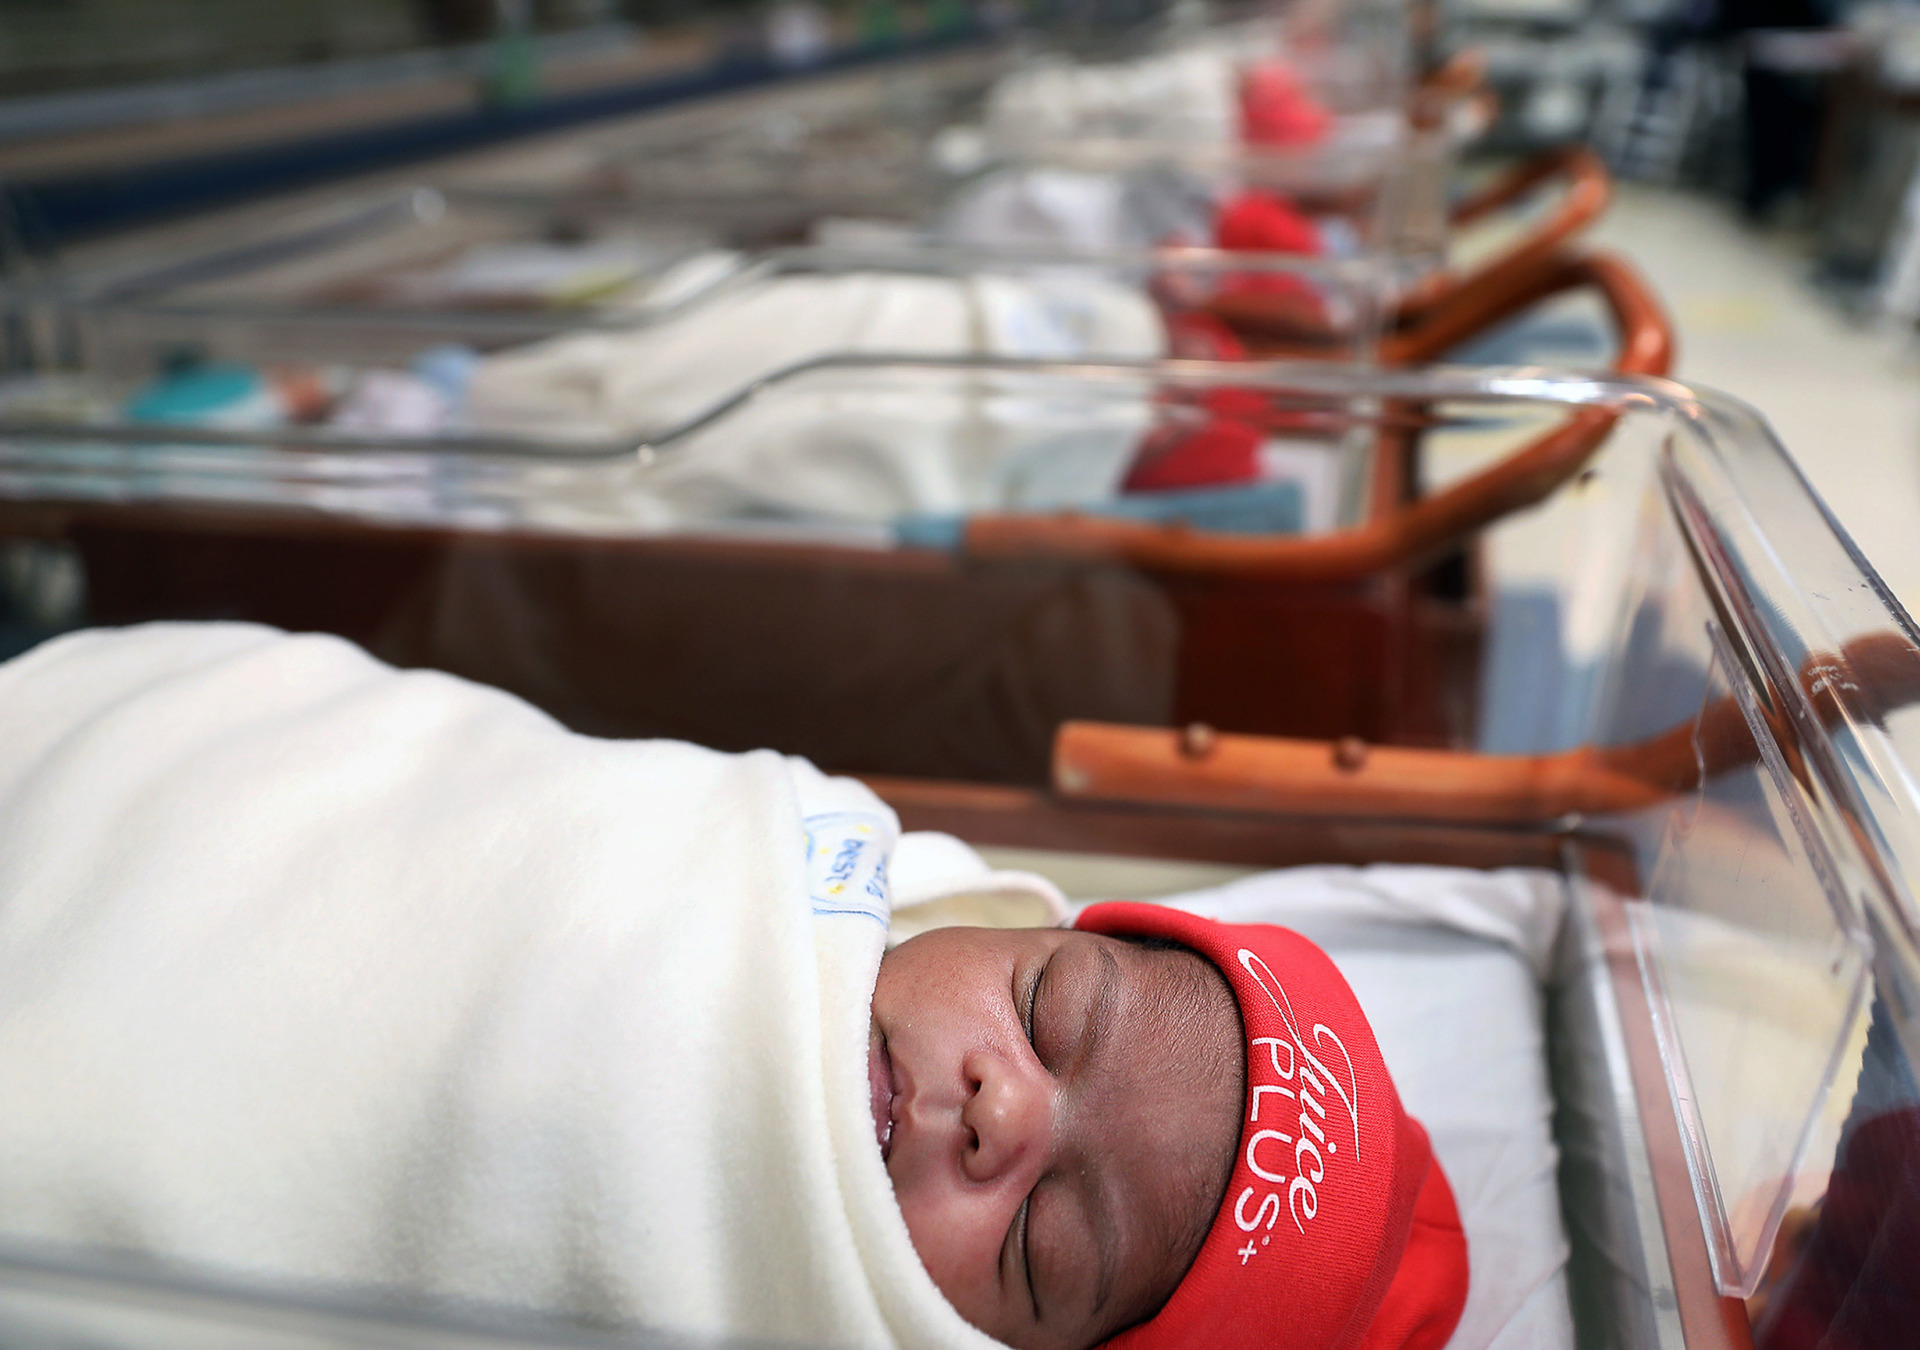 <strong>On Wednesday, Feb. 6, about a dozen newborn babies were lined up in the Baptist Memorial Hospital for Women's nursery window wearing red beanies. The red hats are part of an awareness campaign by the American Heart Association informing new parents that congenital heart defects are the most common type of birth defect, affecting about 40,000 births, or 1 in 100 newborns, each year.</strong> (Patrick Lantrip/Daily Memphian)